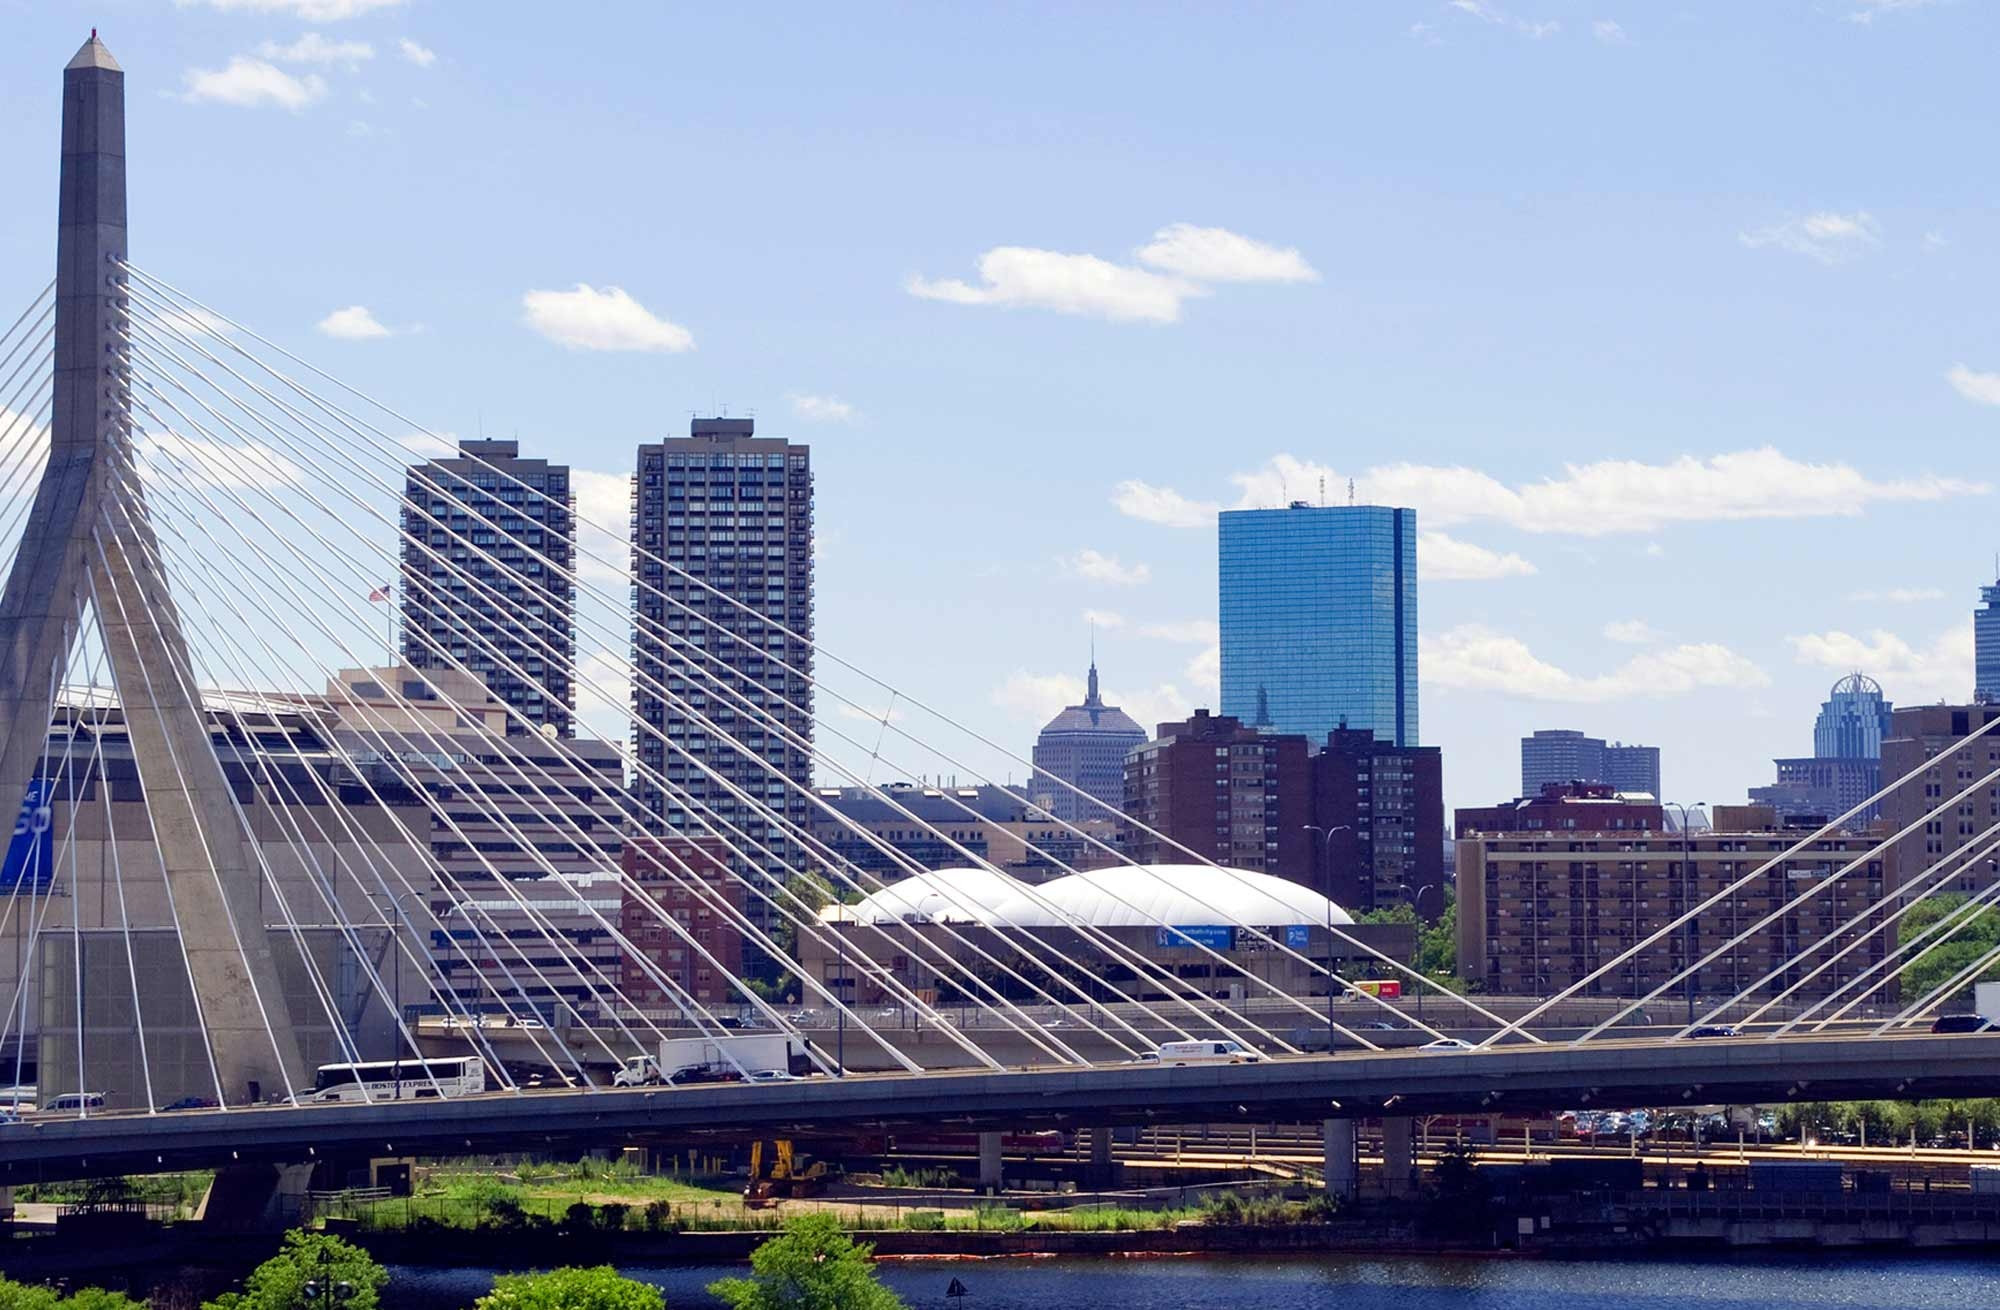 Photo of the Boston skyline with the Zakim bridge